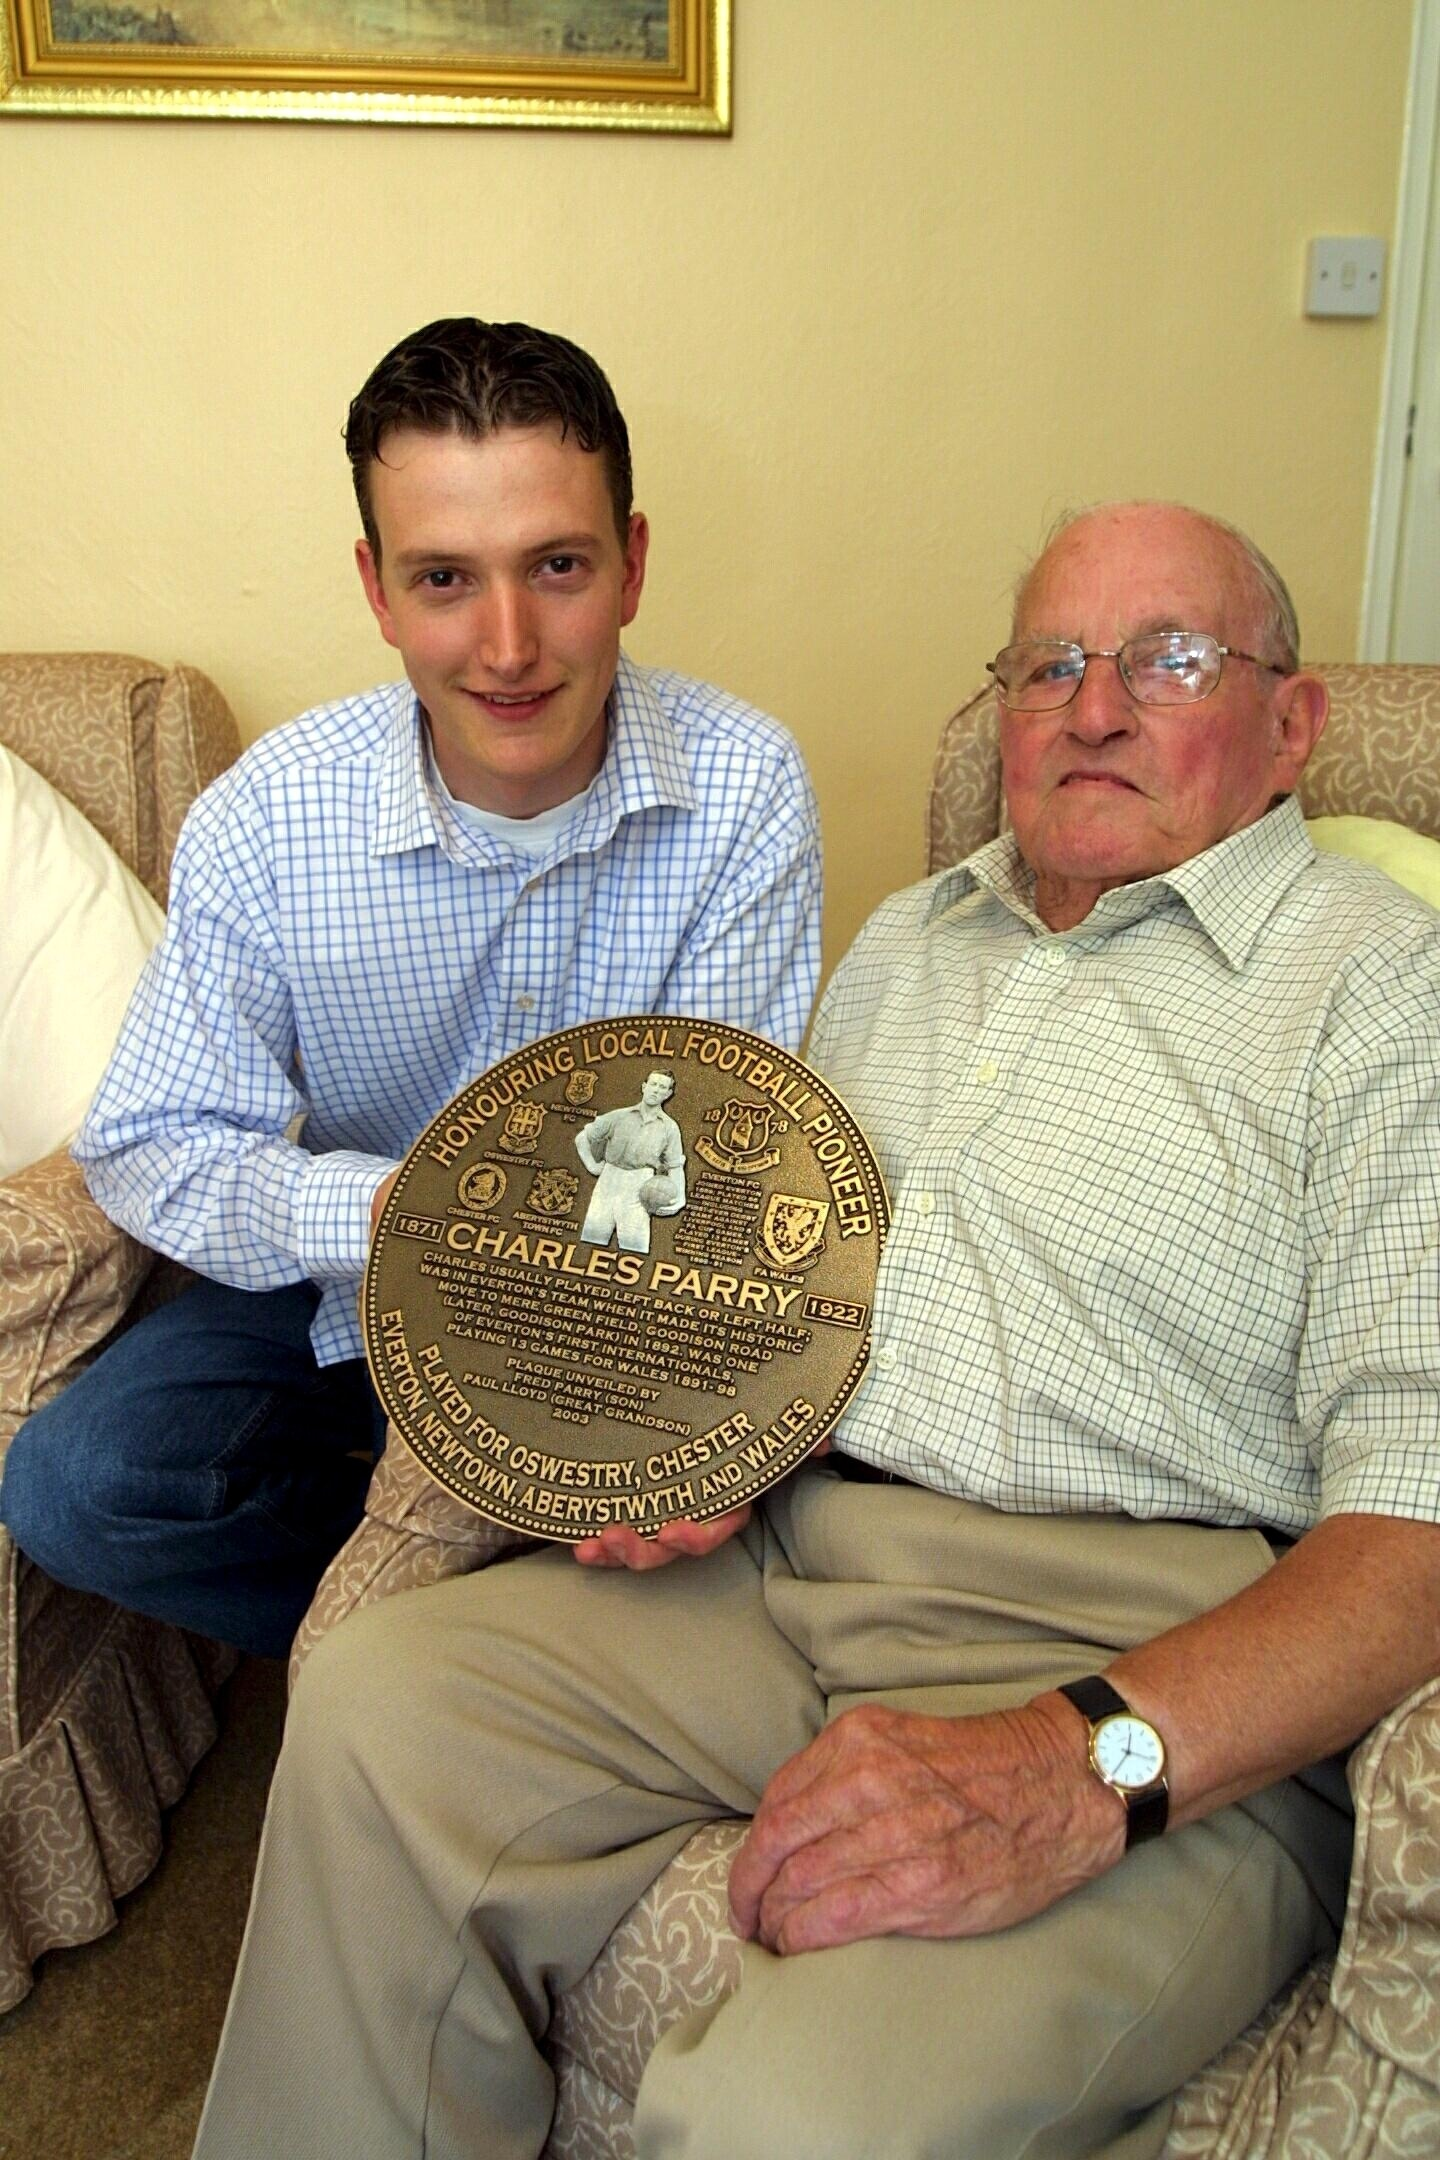 The plaque dedicated to Oswestry football pioneer, Charles Parry held by his great grandson, Paul lloyd, and his son, Fred Parry. The plaque will be mounted in the Powys Hall on August 27th at 12 - 00. The family wish to thank all the contributors who mad